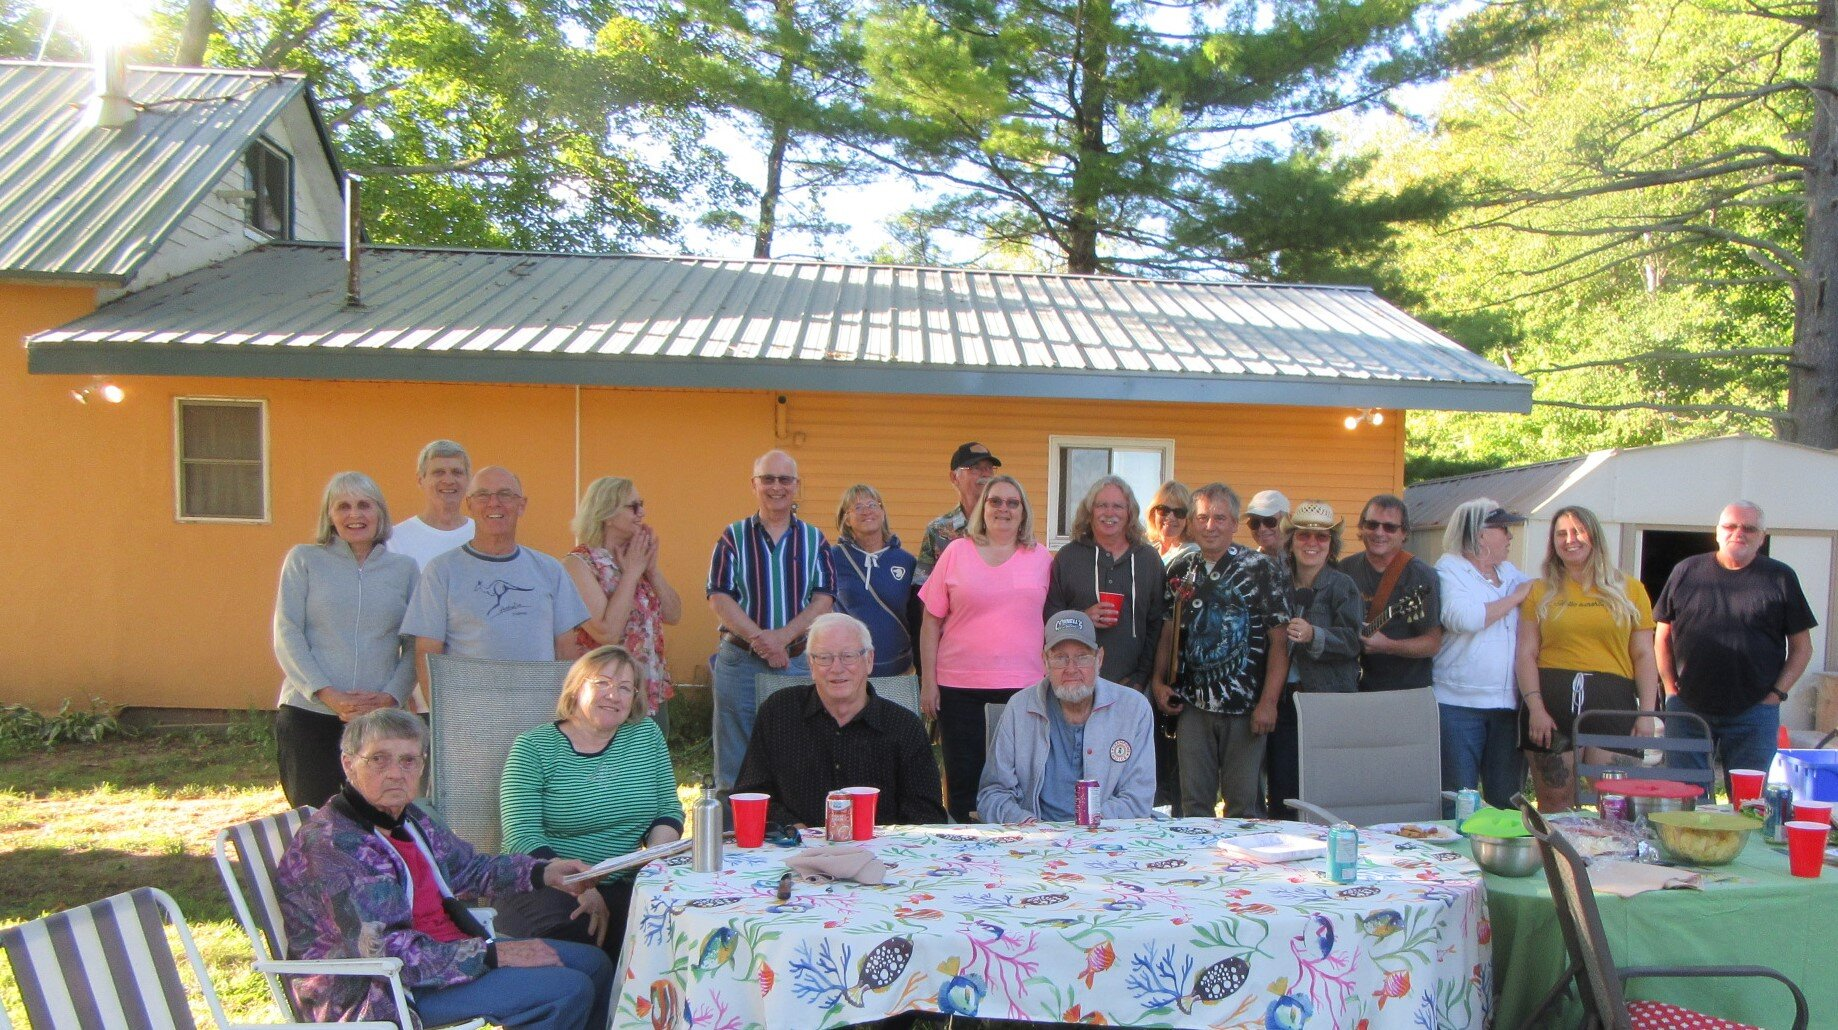 Owners Elena Kristiansen and Mike McGough, celebrate 150th anniversary of school with neighbours and friends - Aug.31, 2019